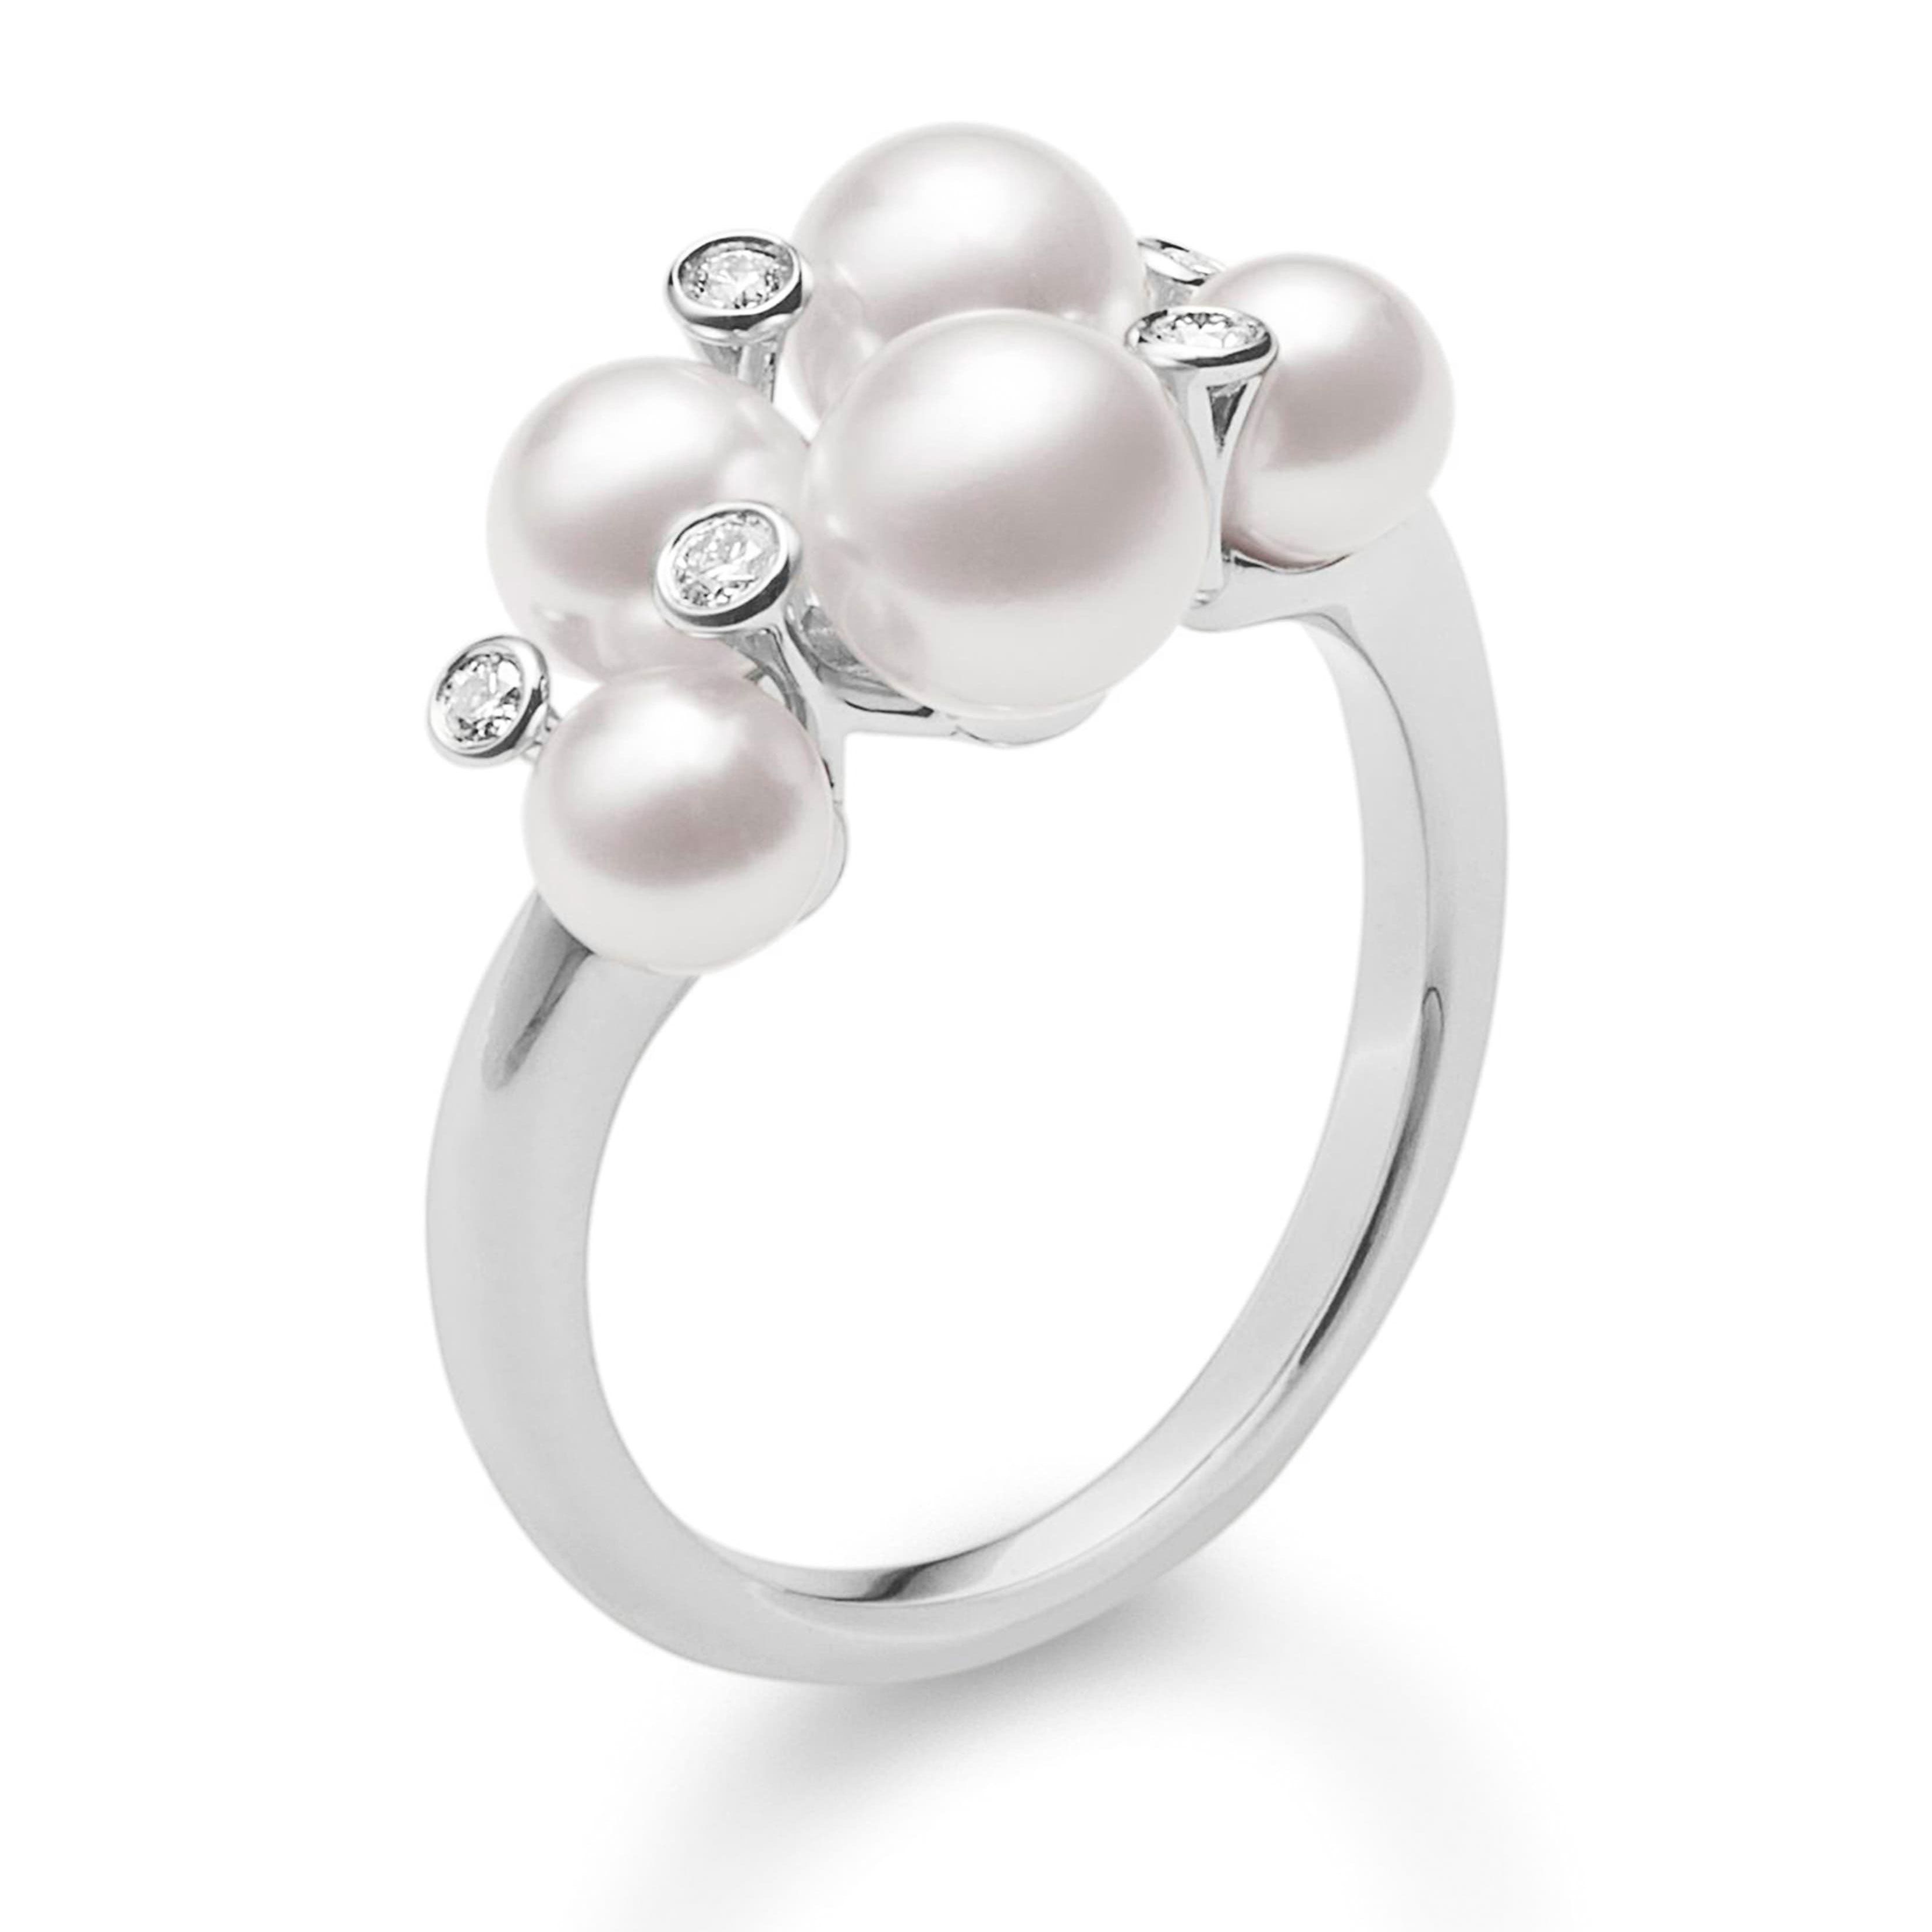 Mikimoto Japan Collections Diamond & Pearl Cluster Ring from Nordstrom photo